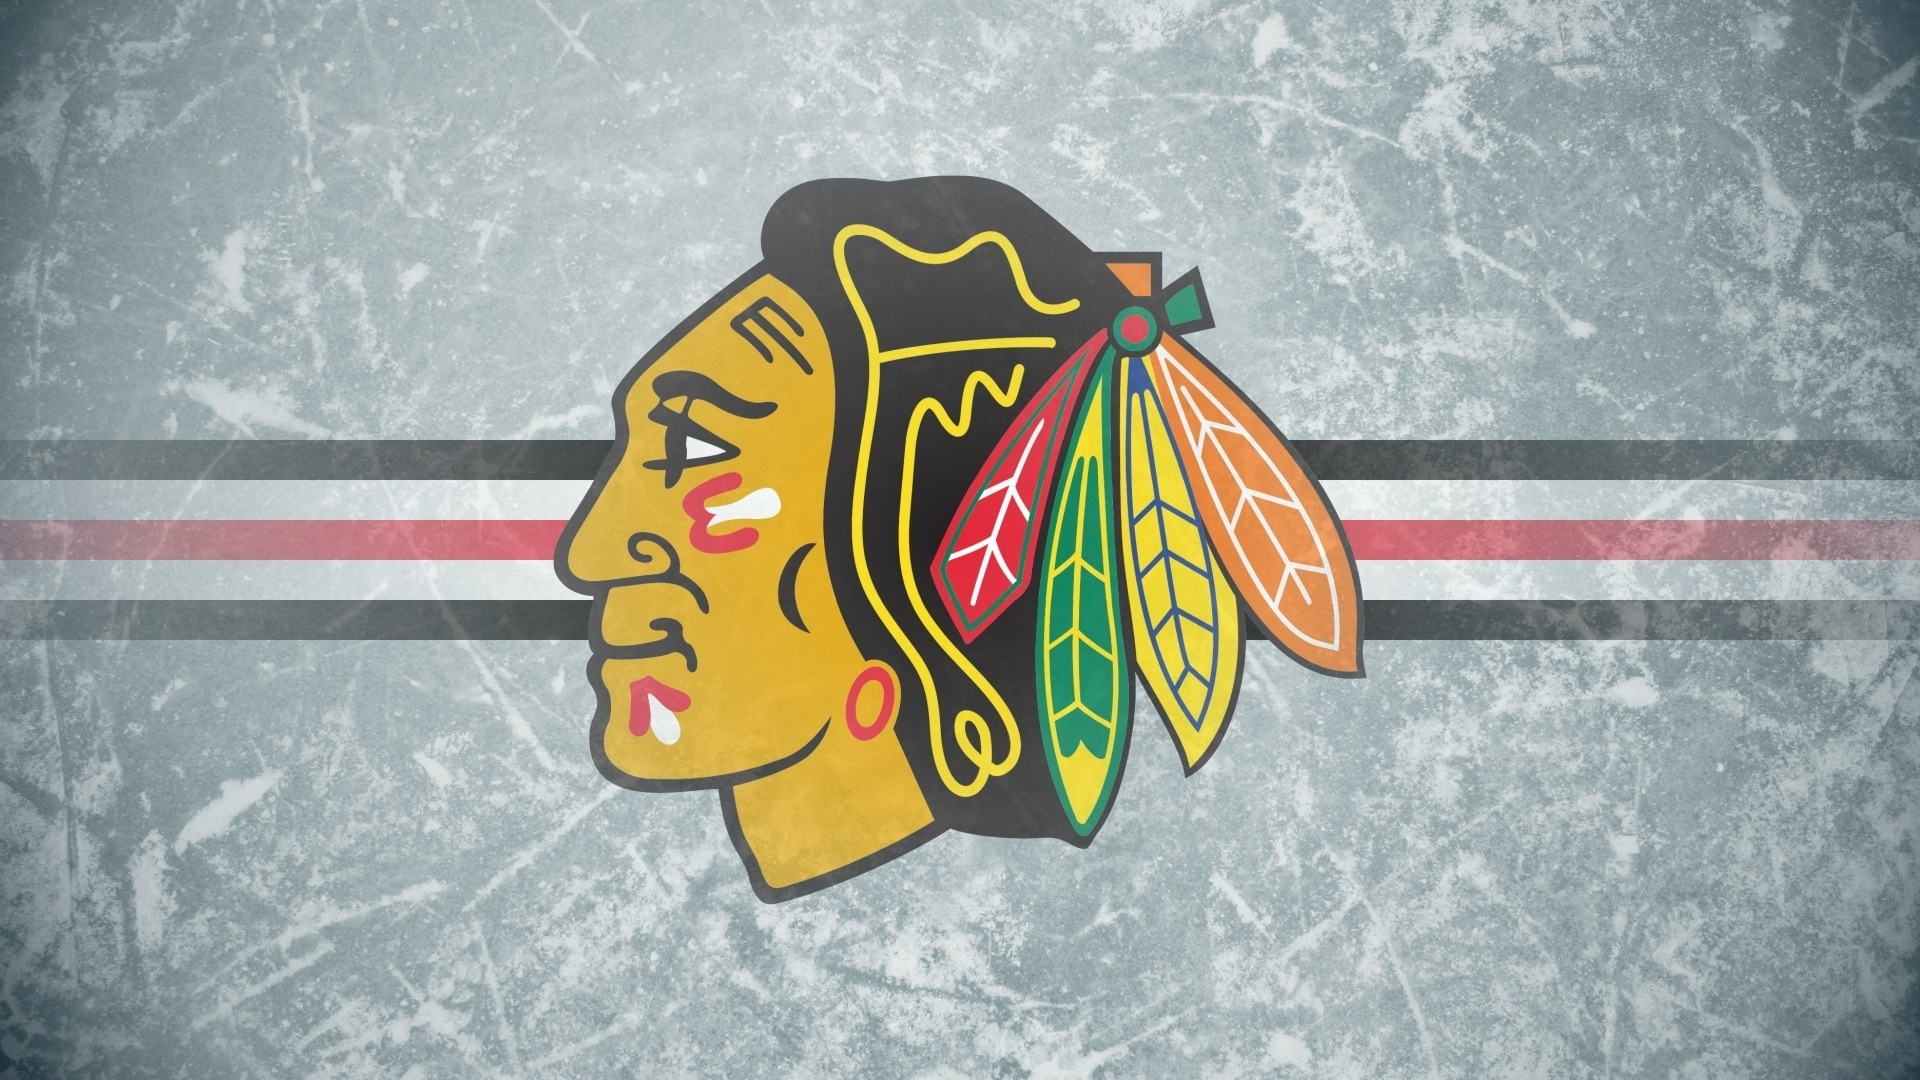 chicago blackhawks wallpaper 15347 1920x1080 px ~ hdwallsource